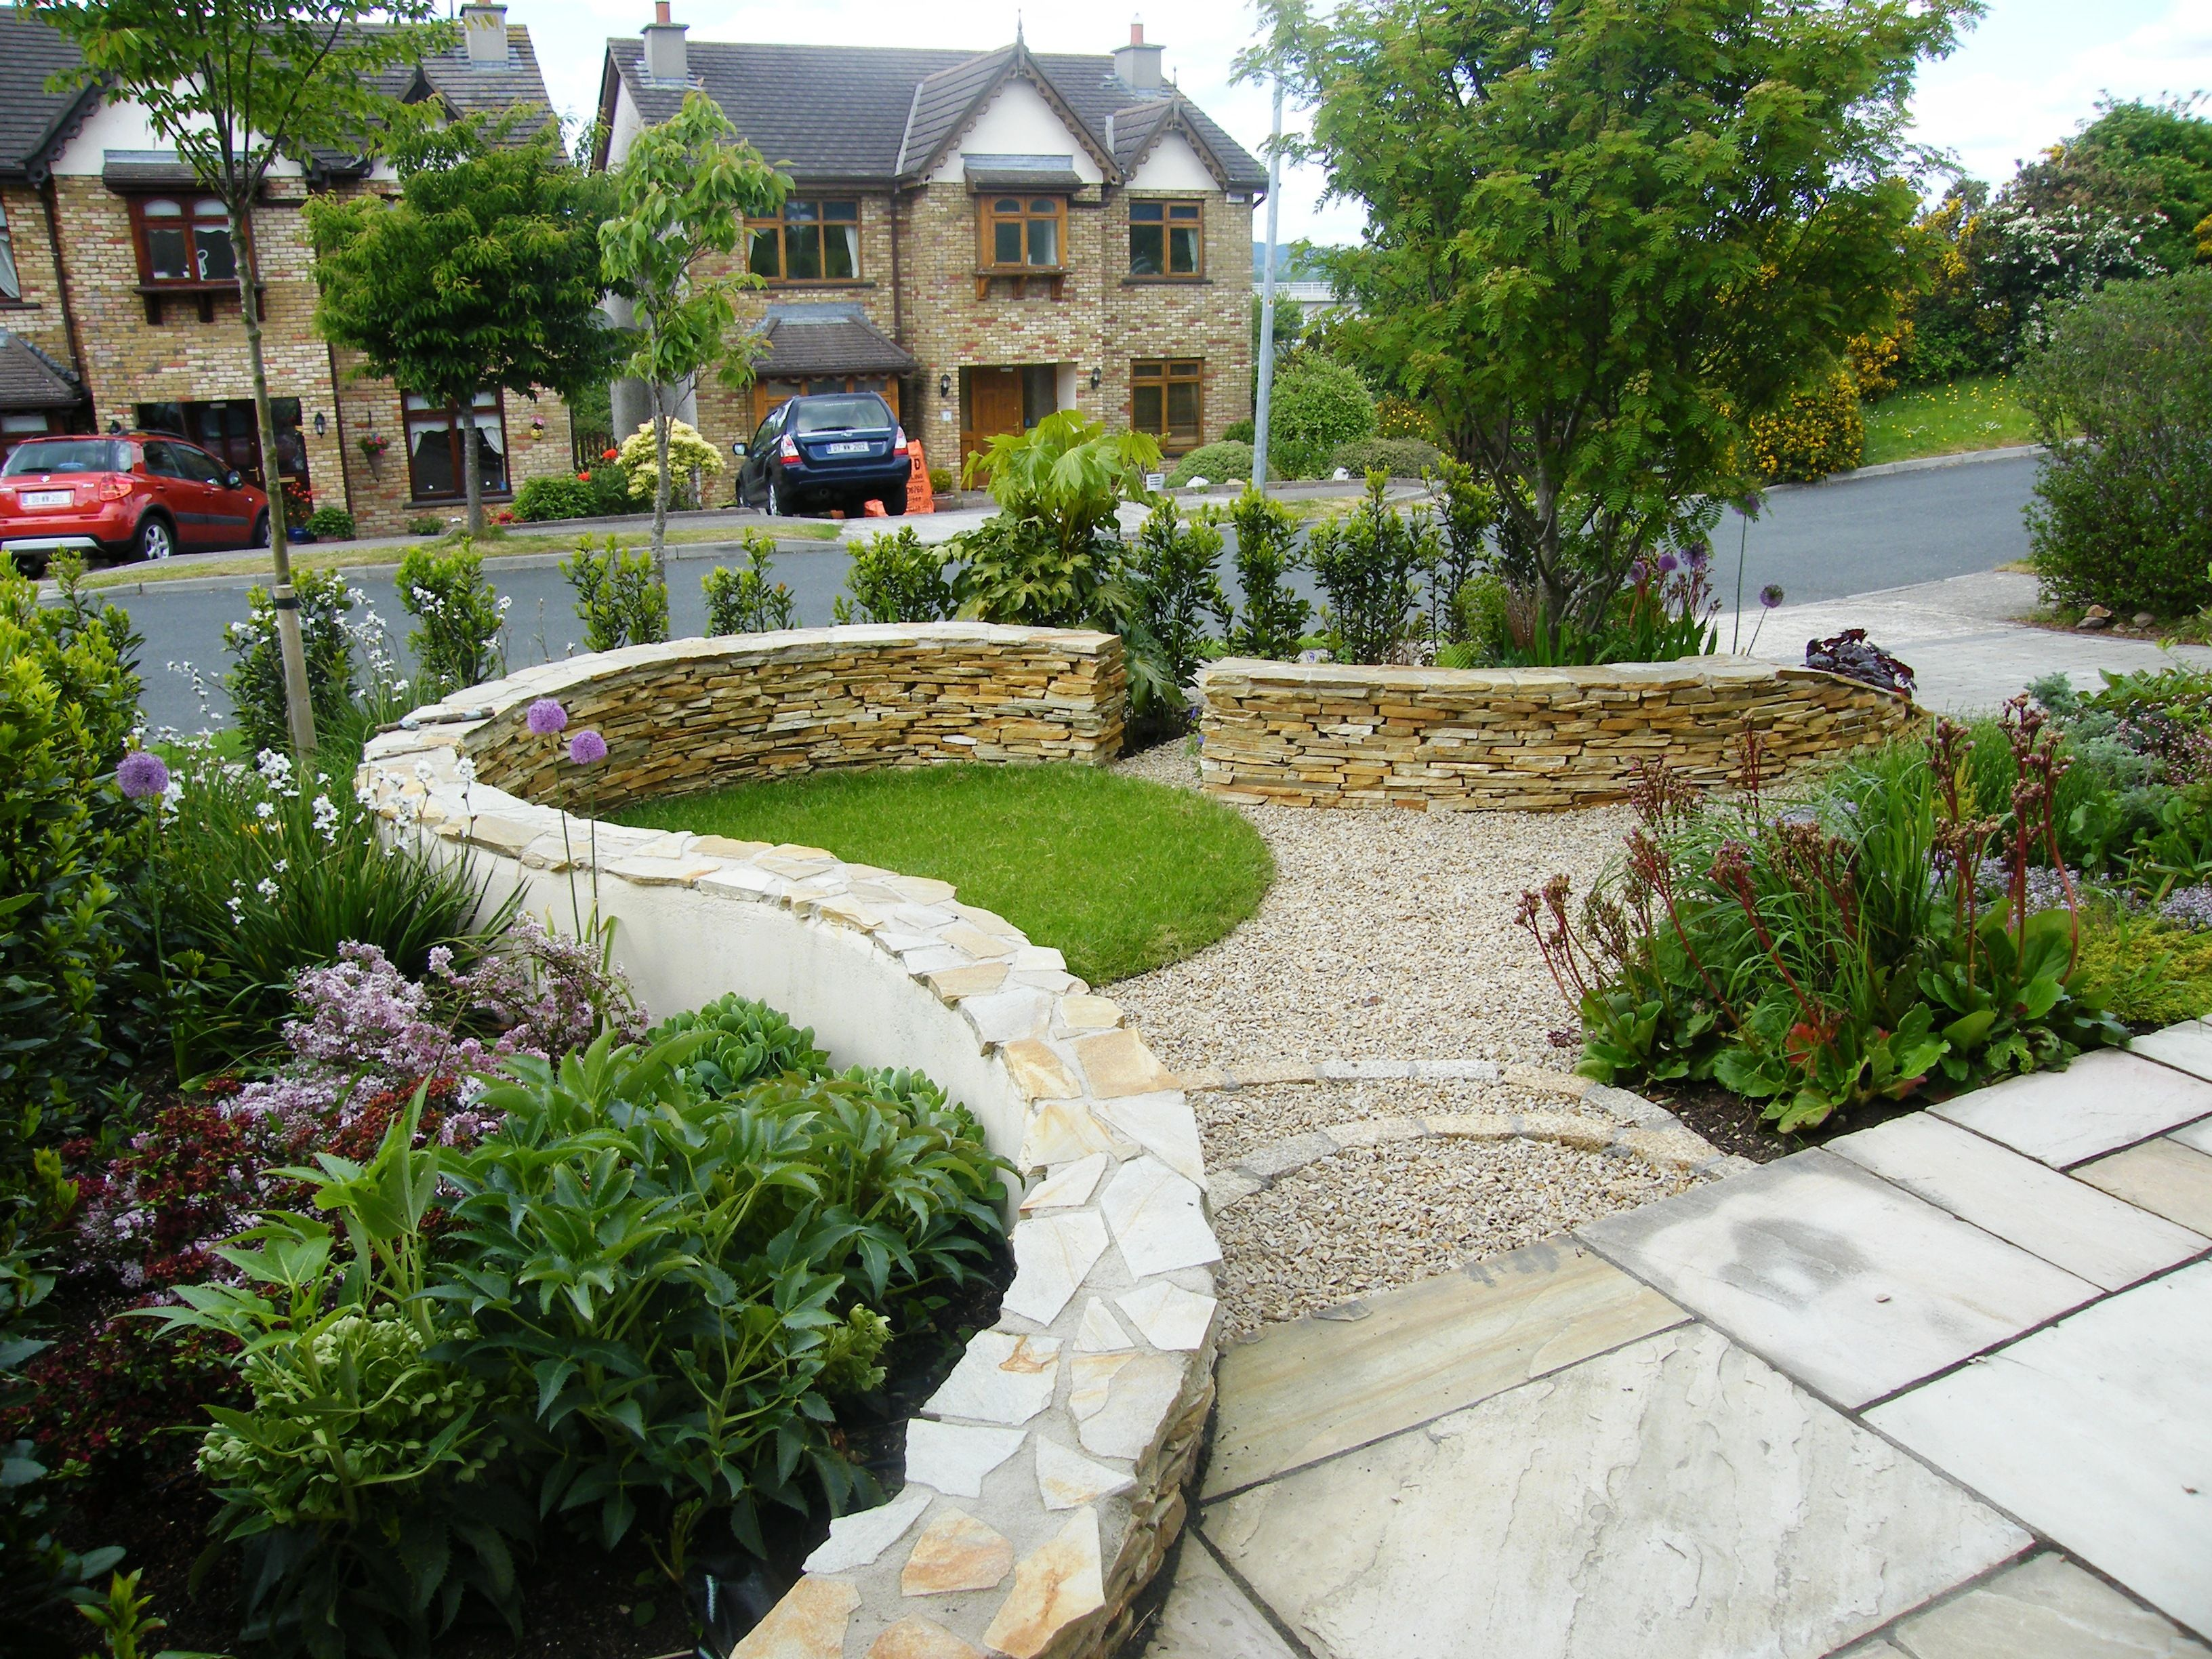 Stone Garden Design Low Hight Rock Walls Can Create Great Additional Seating For When You Entert Garden Landscape Design Rock Garden Design Landscape Design